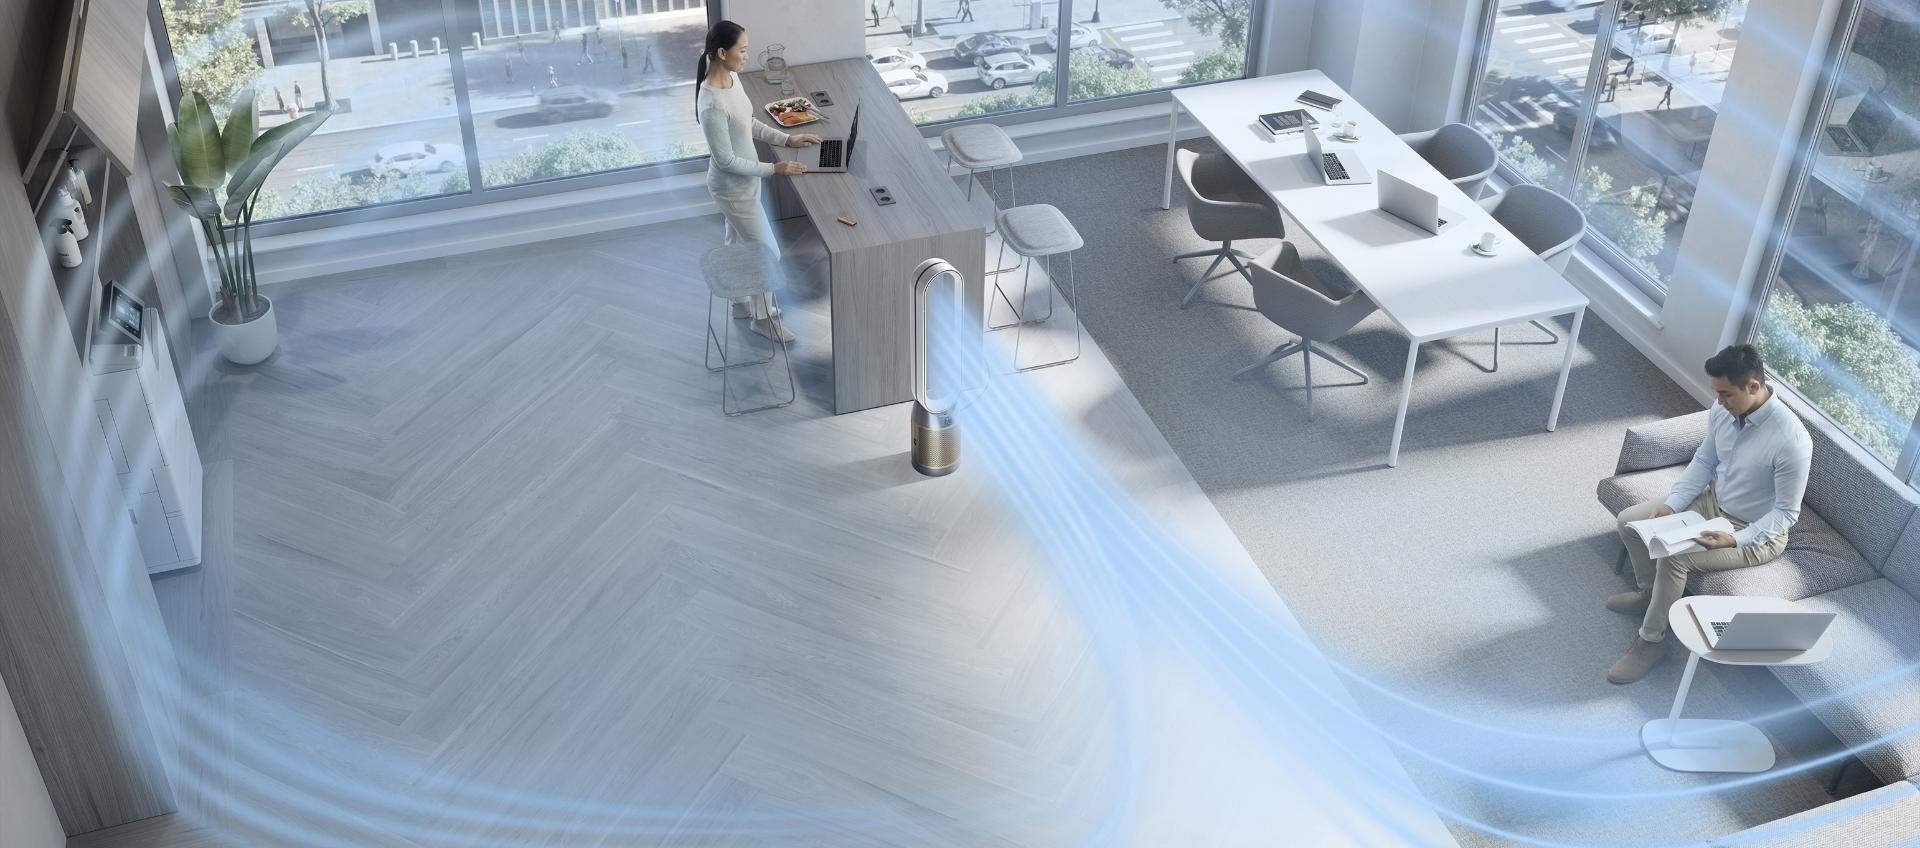 Dyson HEPA Cool Formaldehyde tower fan projecting purified air around an open-plan office